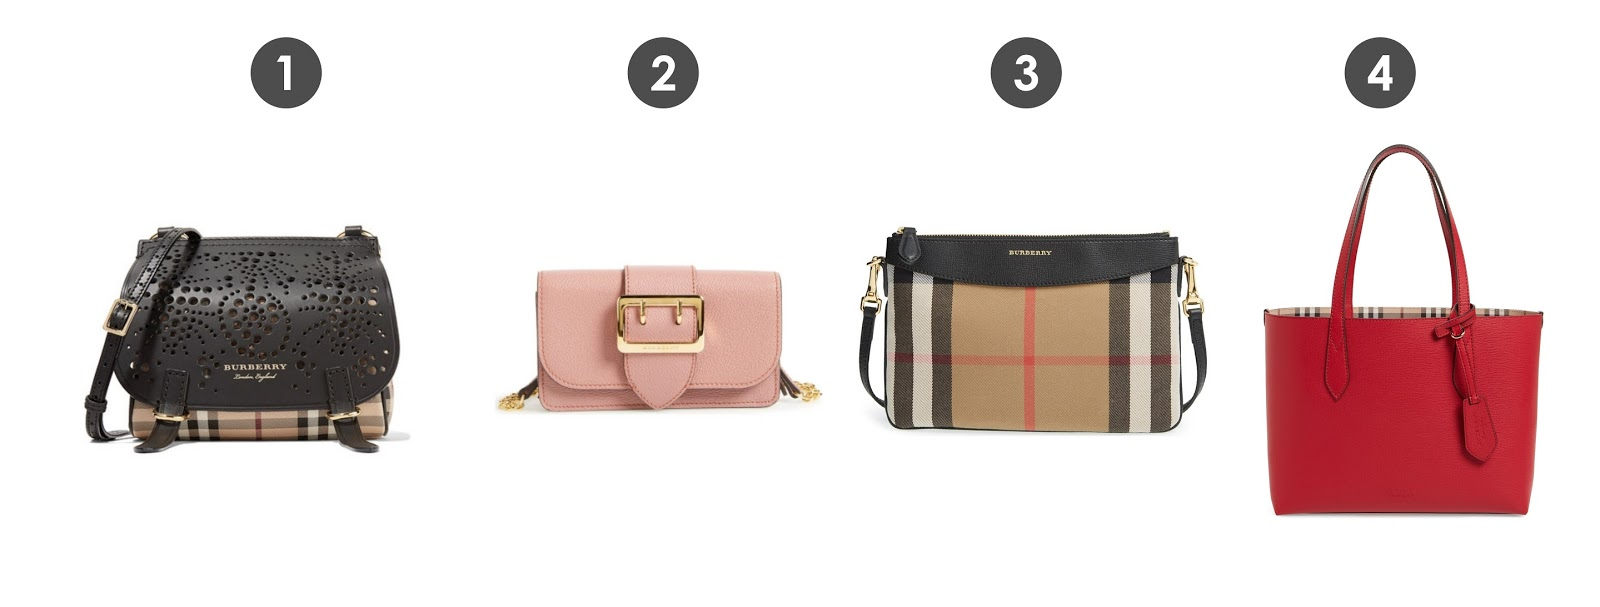 7980c8fd30f1 I love that some of the bags have the bold statement of Burberry s classic  checkered print while others have just small hints of it.